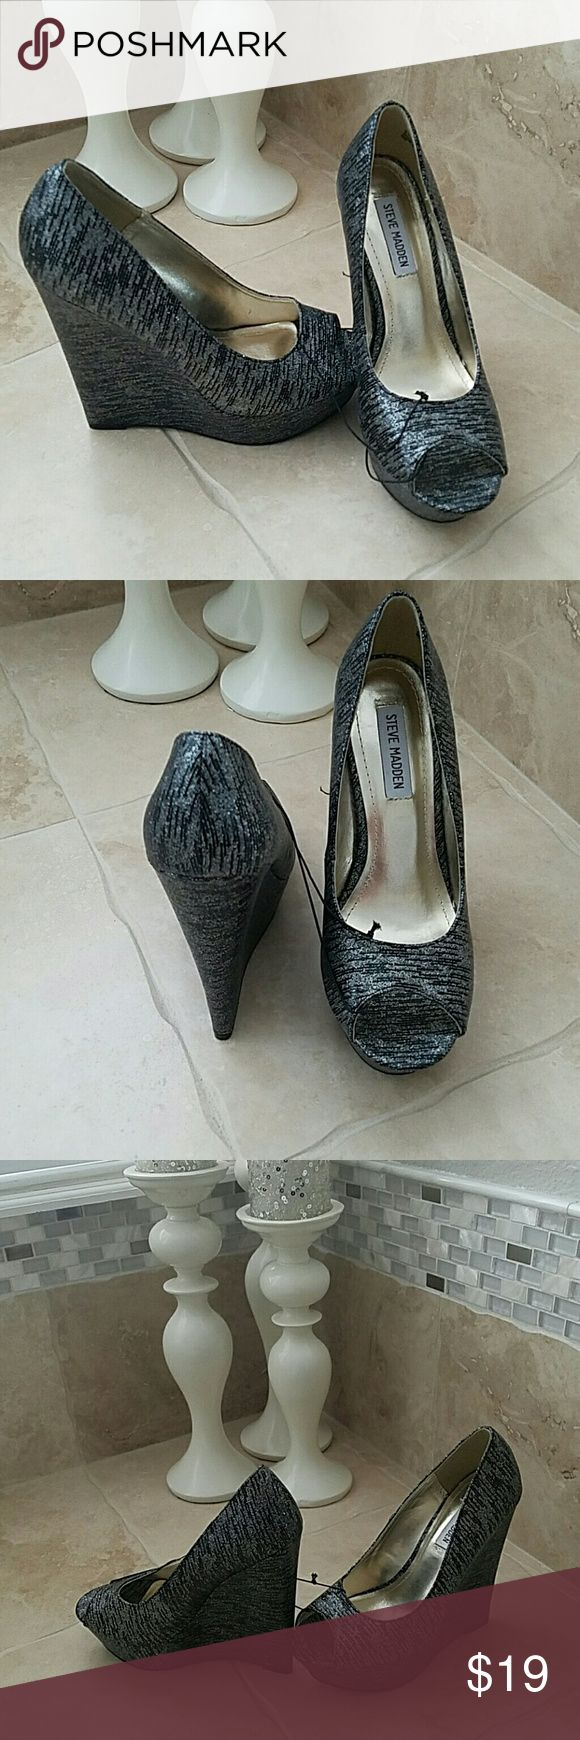 New Steve Madden silver Wedges Size 8